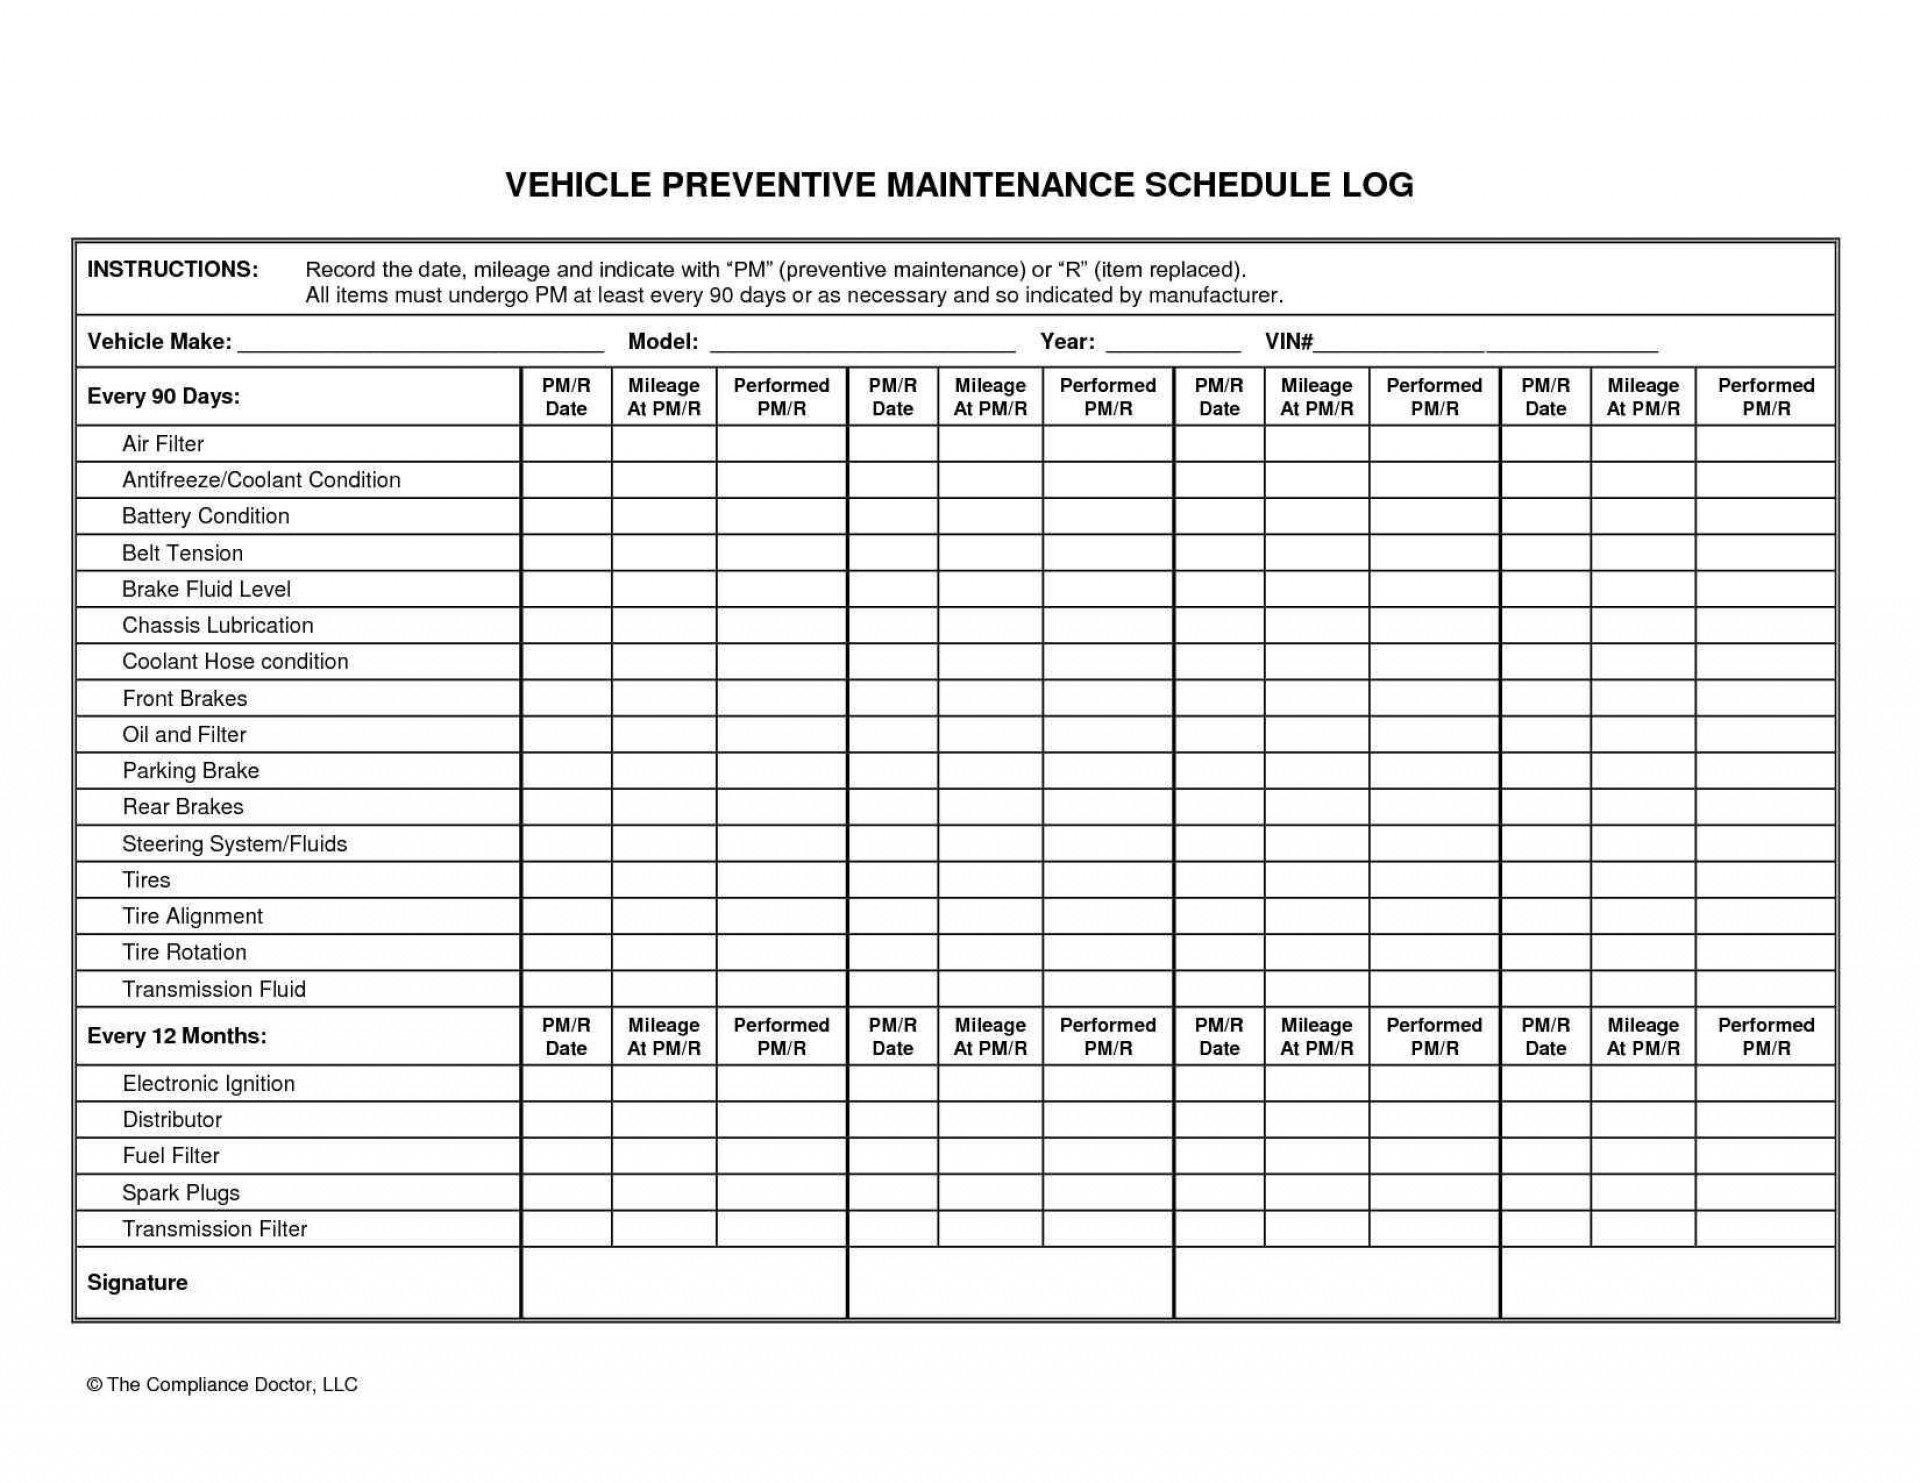 002 Archaicawful Car Maintenance Schedule Template Inspiration  Vehicle Preventive Excel Log1920